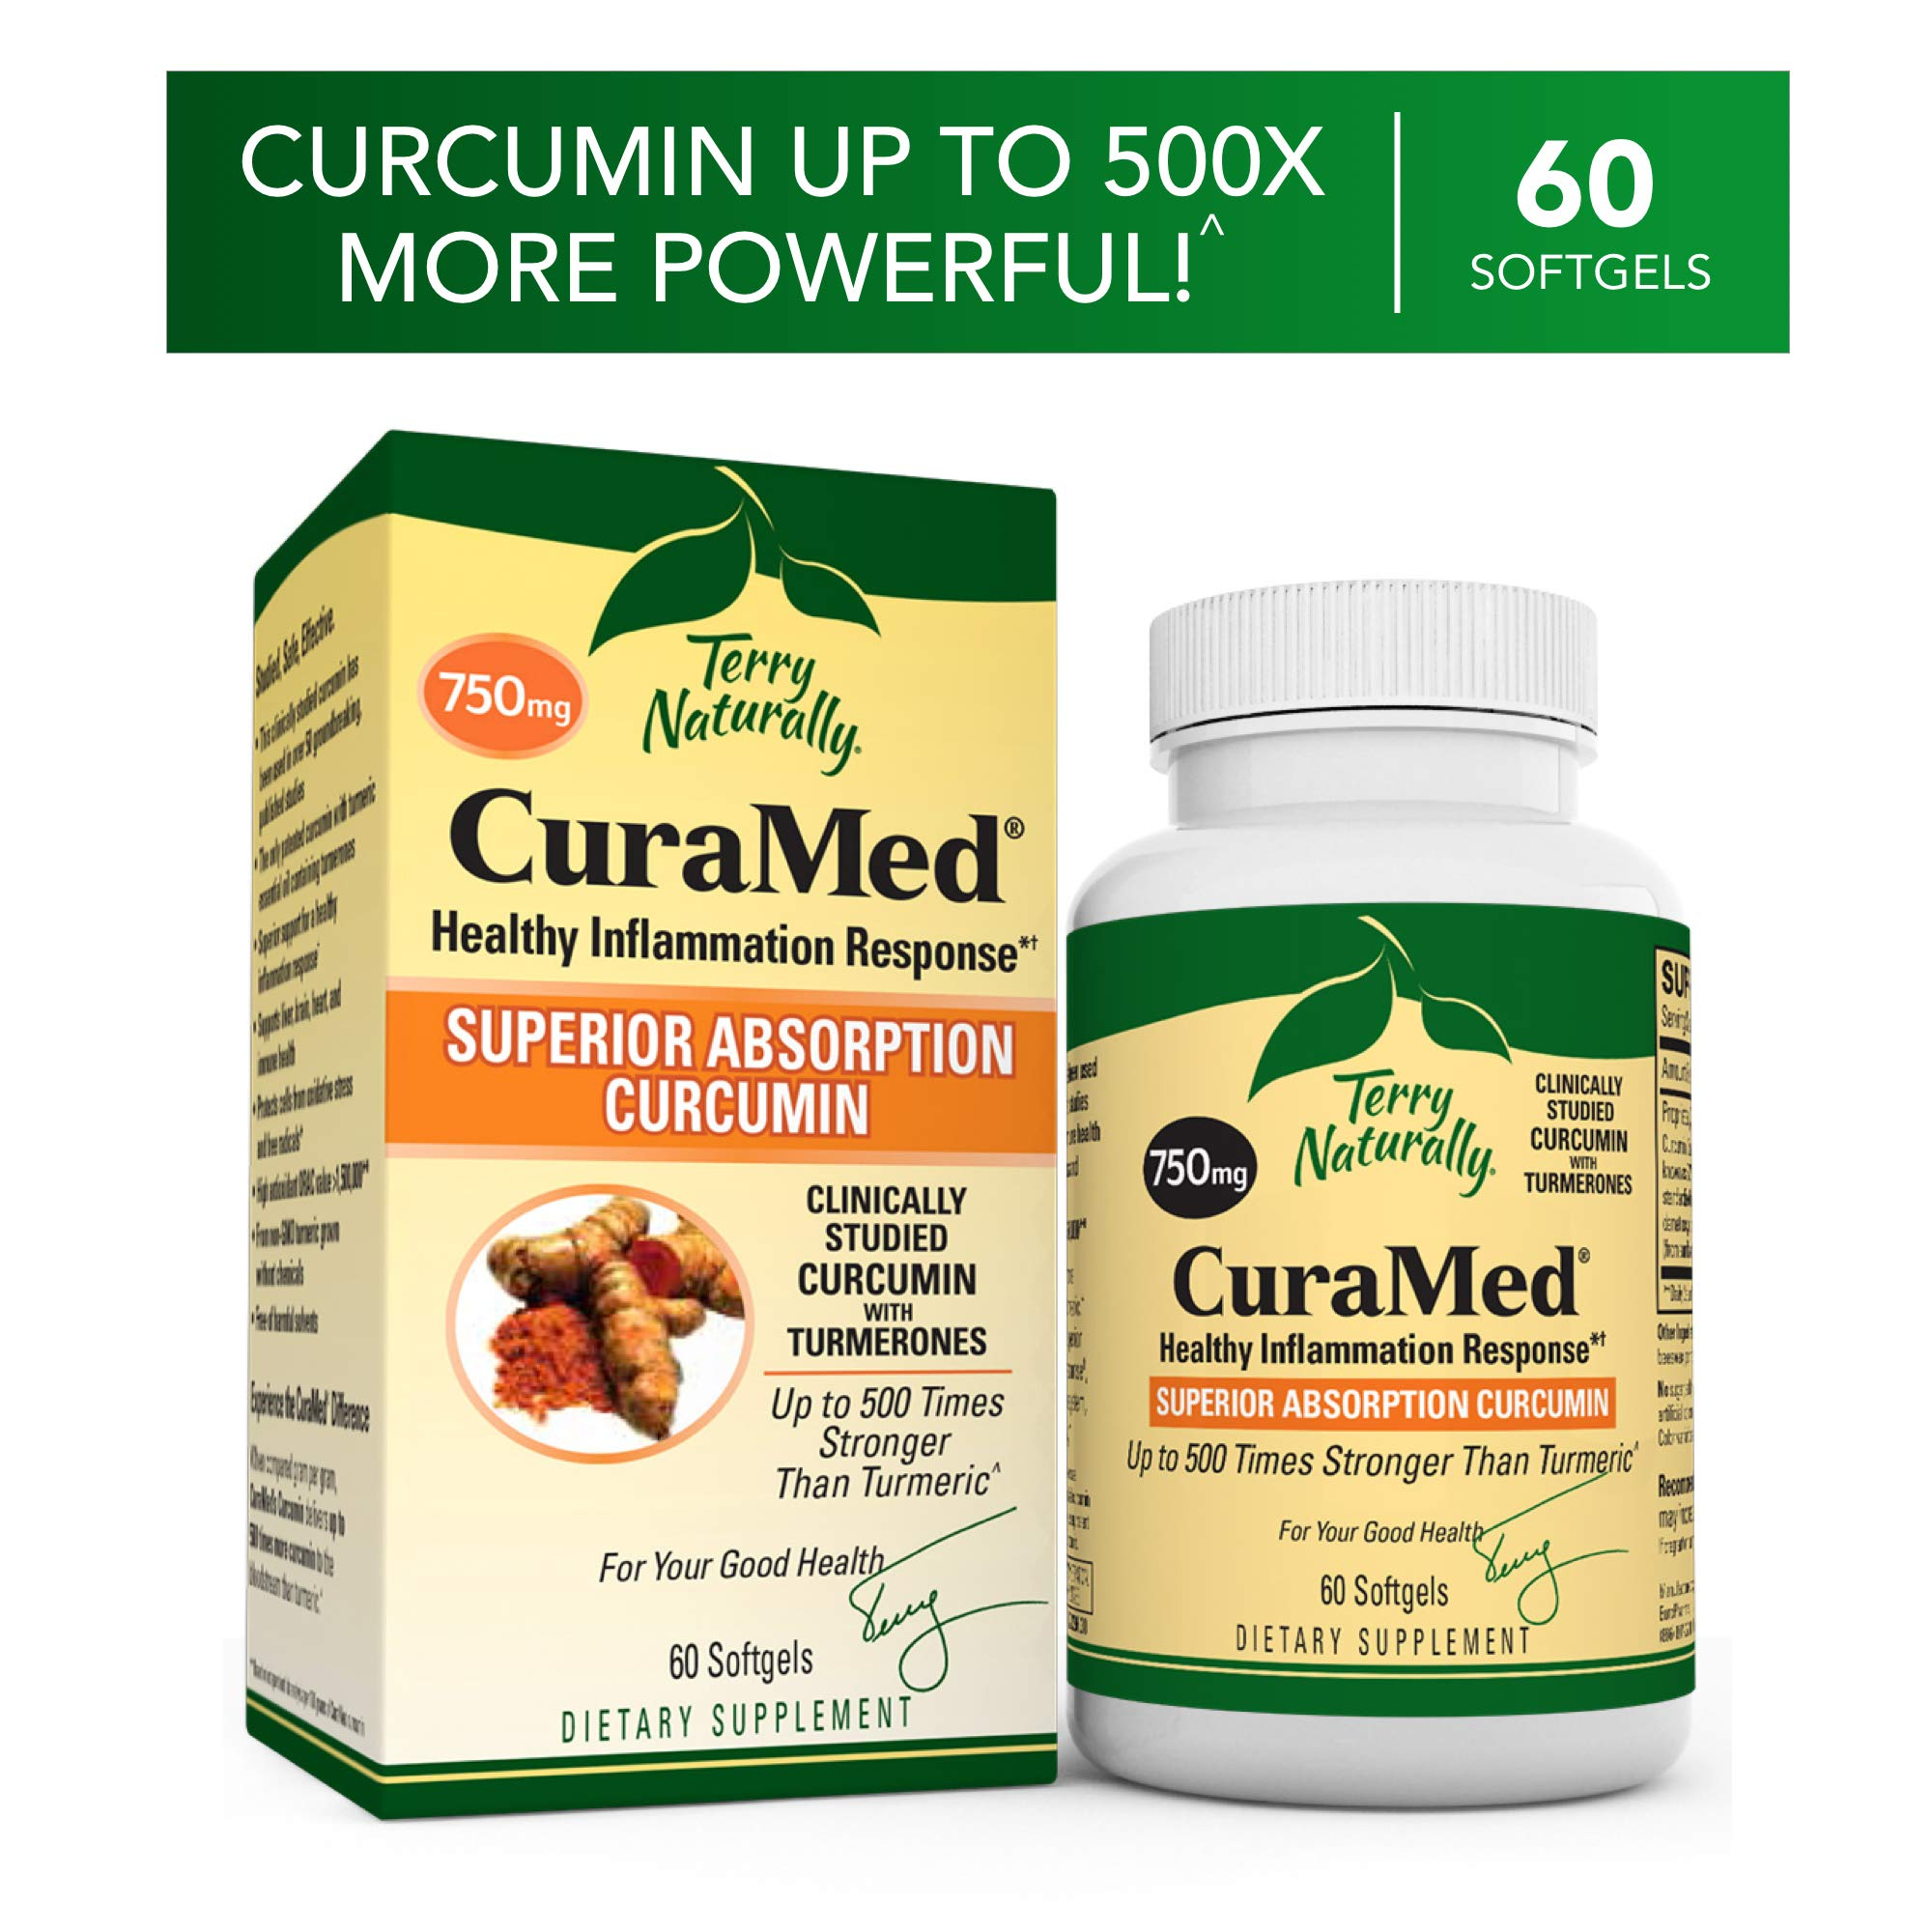 Terry Naturally CuraMed 750 mg - 60 Softgels - Superior Absorption BCM-95 Curcumin Supplement, Promotes Healthy Inflammation Response - Non-GMO, Gluten-Free, Halal - 60 Servings by Terry Naturally